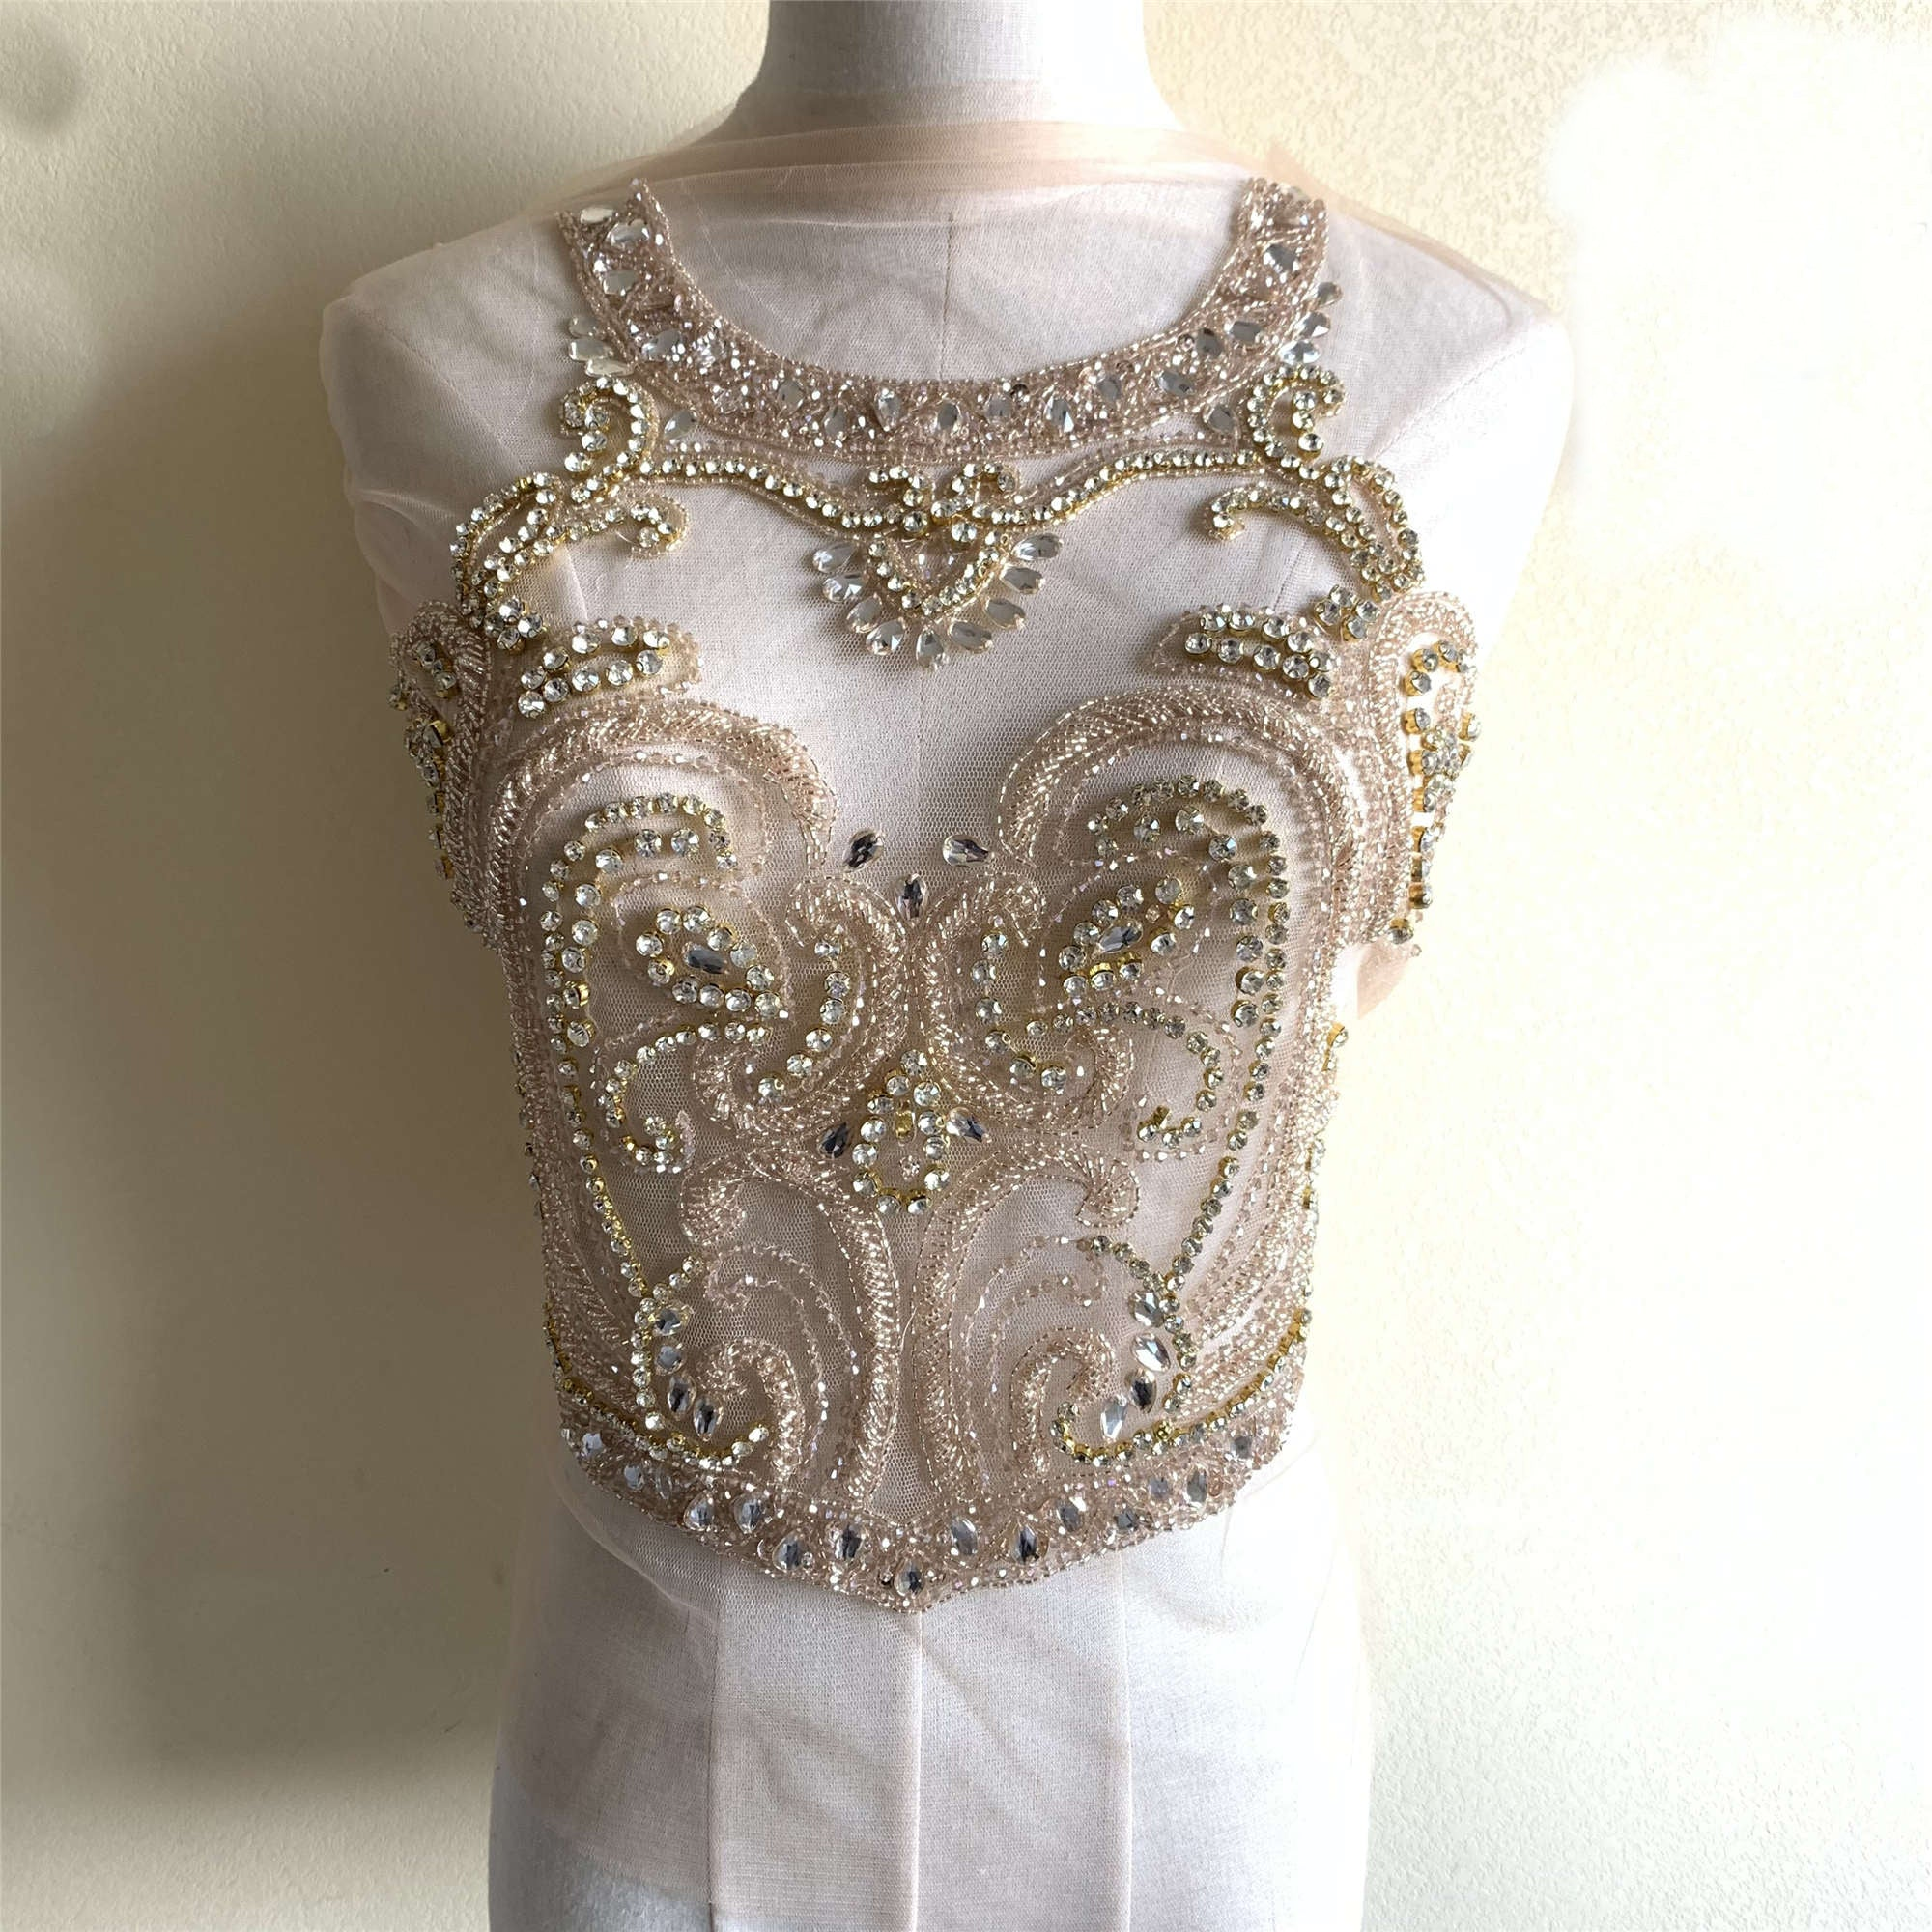 crystal applique crystal bodice applique for wedding dress haute couture supplies Deluxe Rhinestone bodice applique bridal supplies